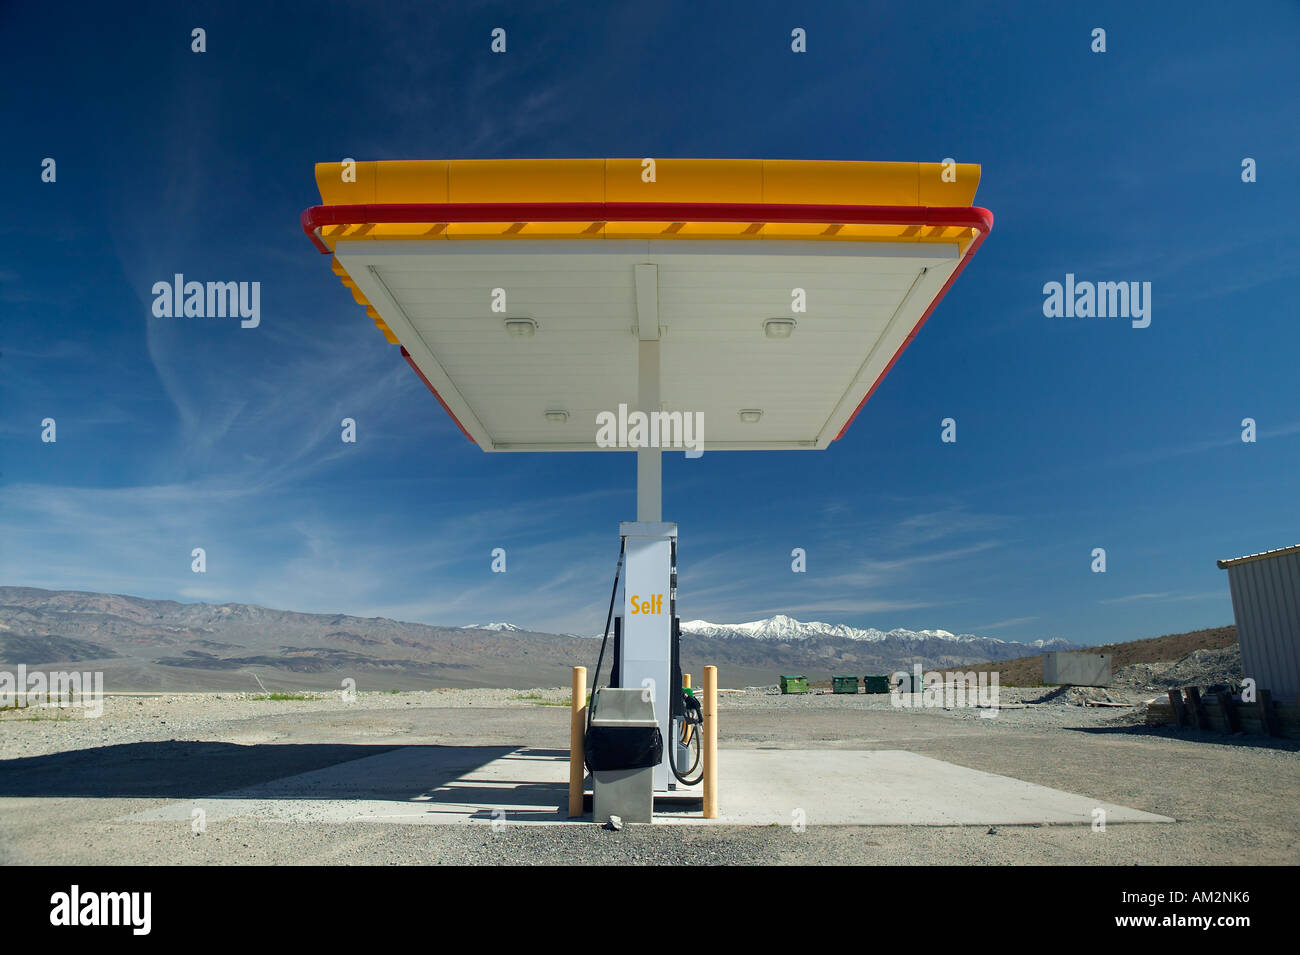 A desolate Shell Gas Station with a sign reading Self on it is Stock